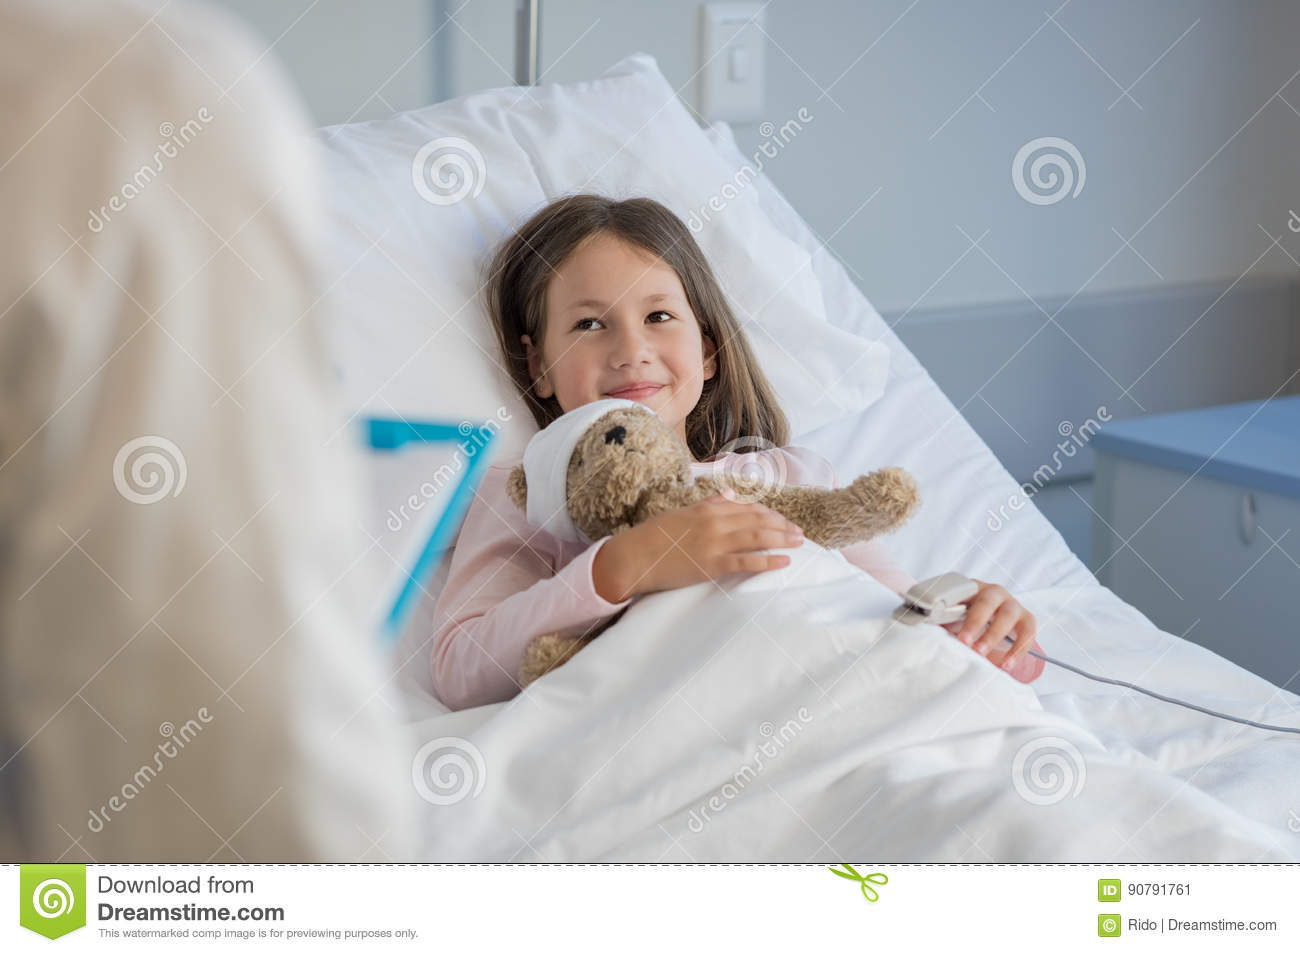 Download Cute Girl At Hospital Stock Image. Image Of Visit, Sick   90791761